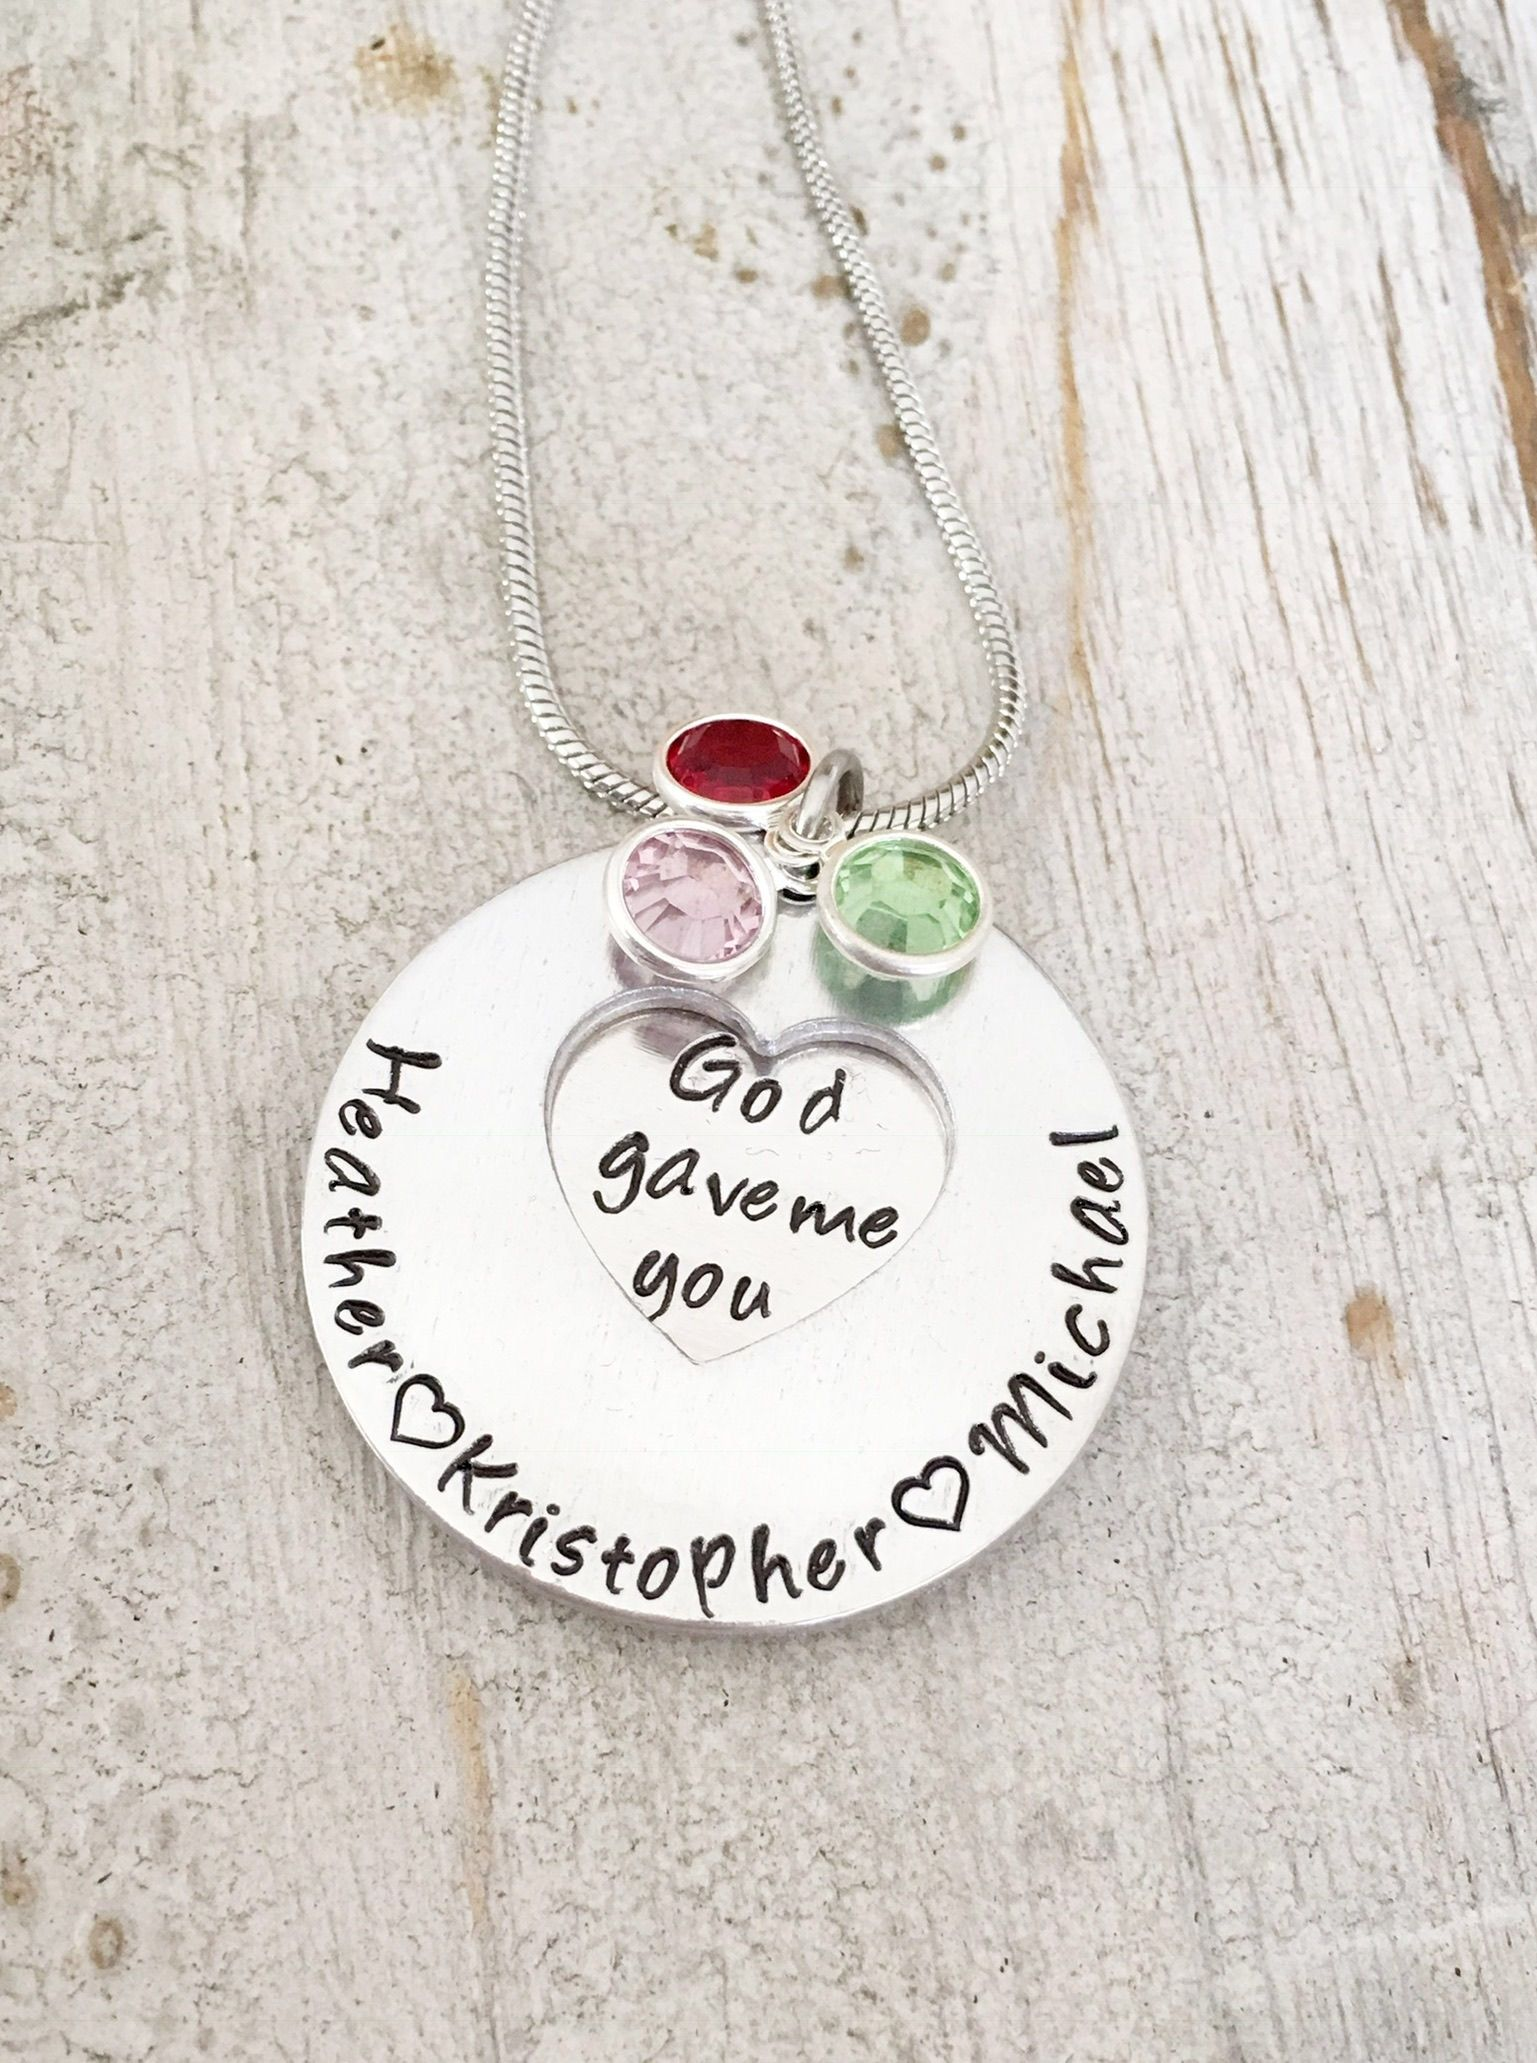 mother mothers necklace s on birds addiction stone eve jewelry branch birthstone stones jewellery